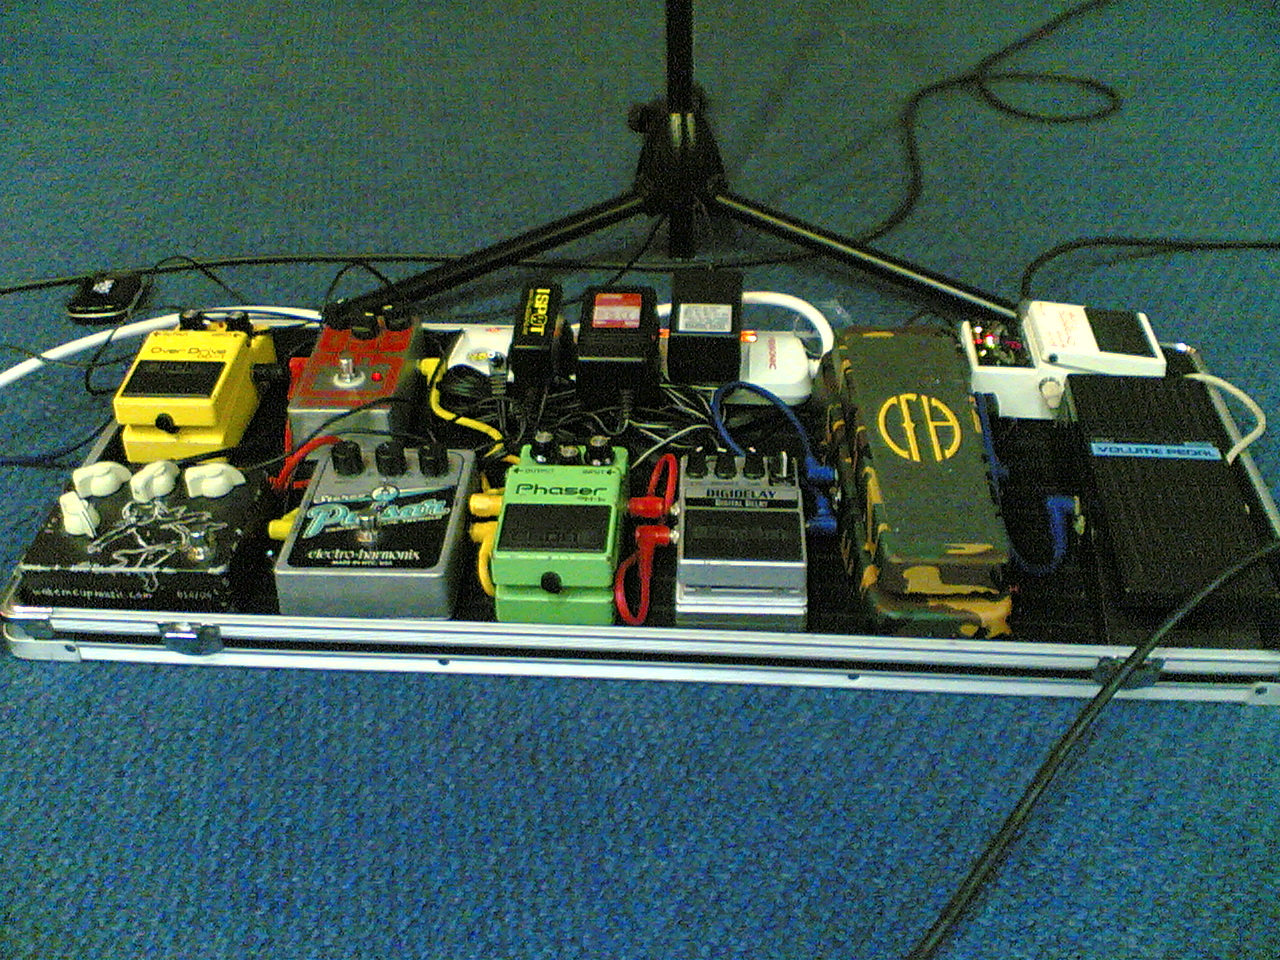 Terry's floorboard guitar equipments